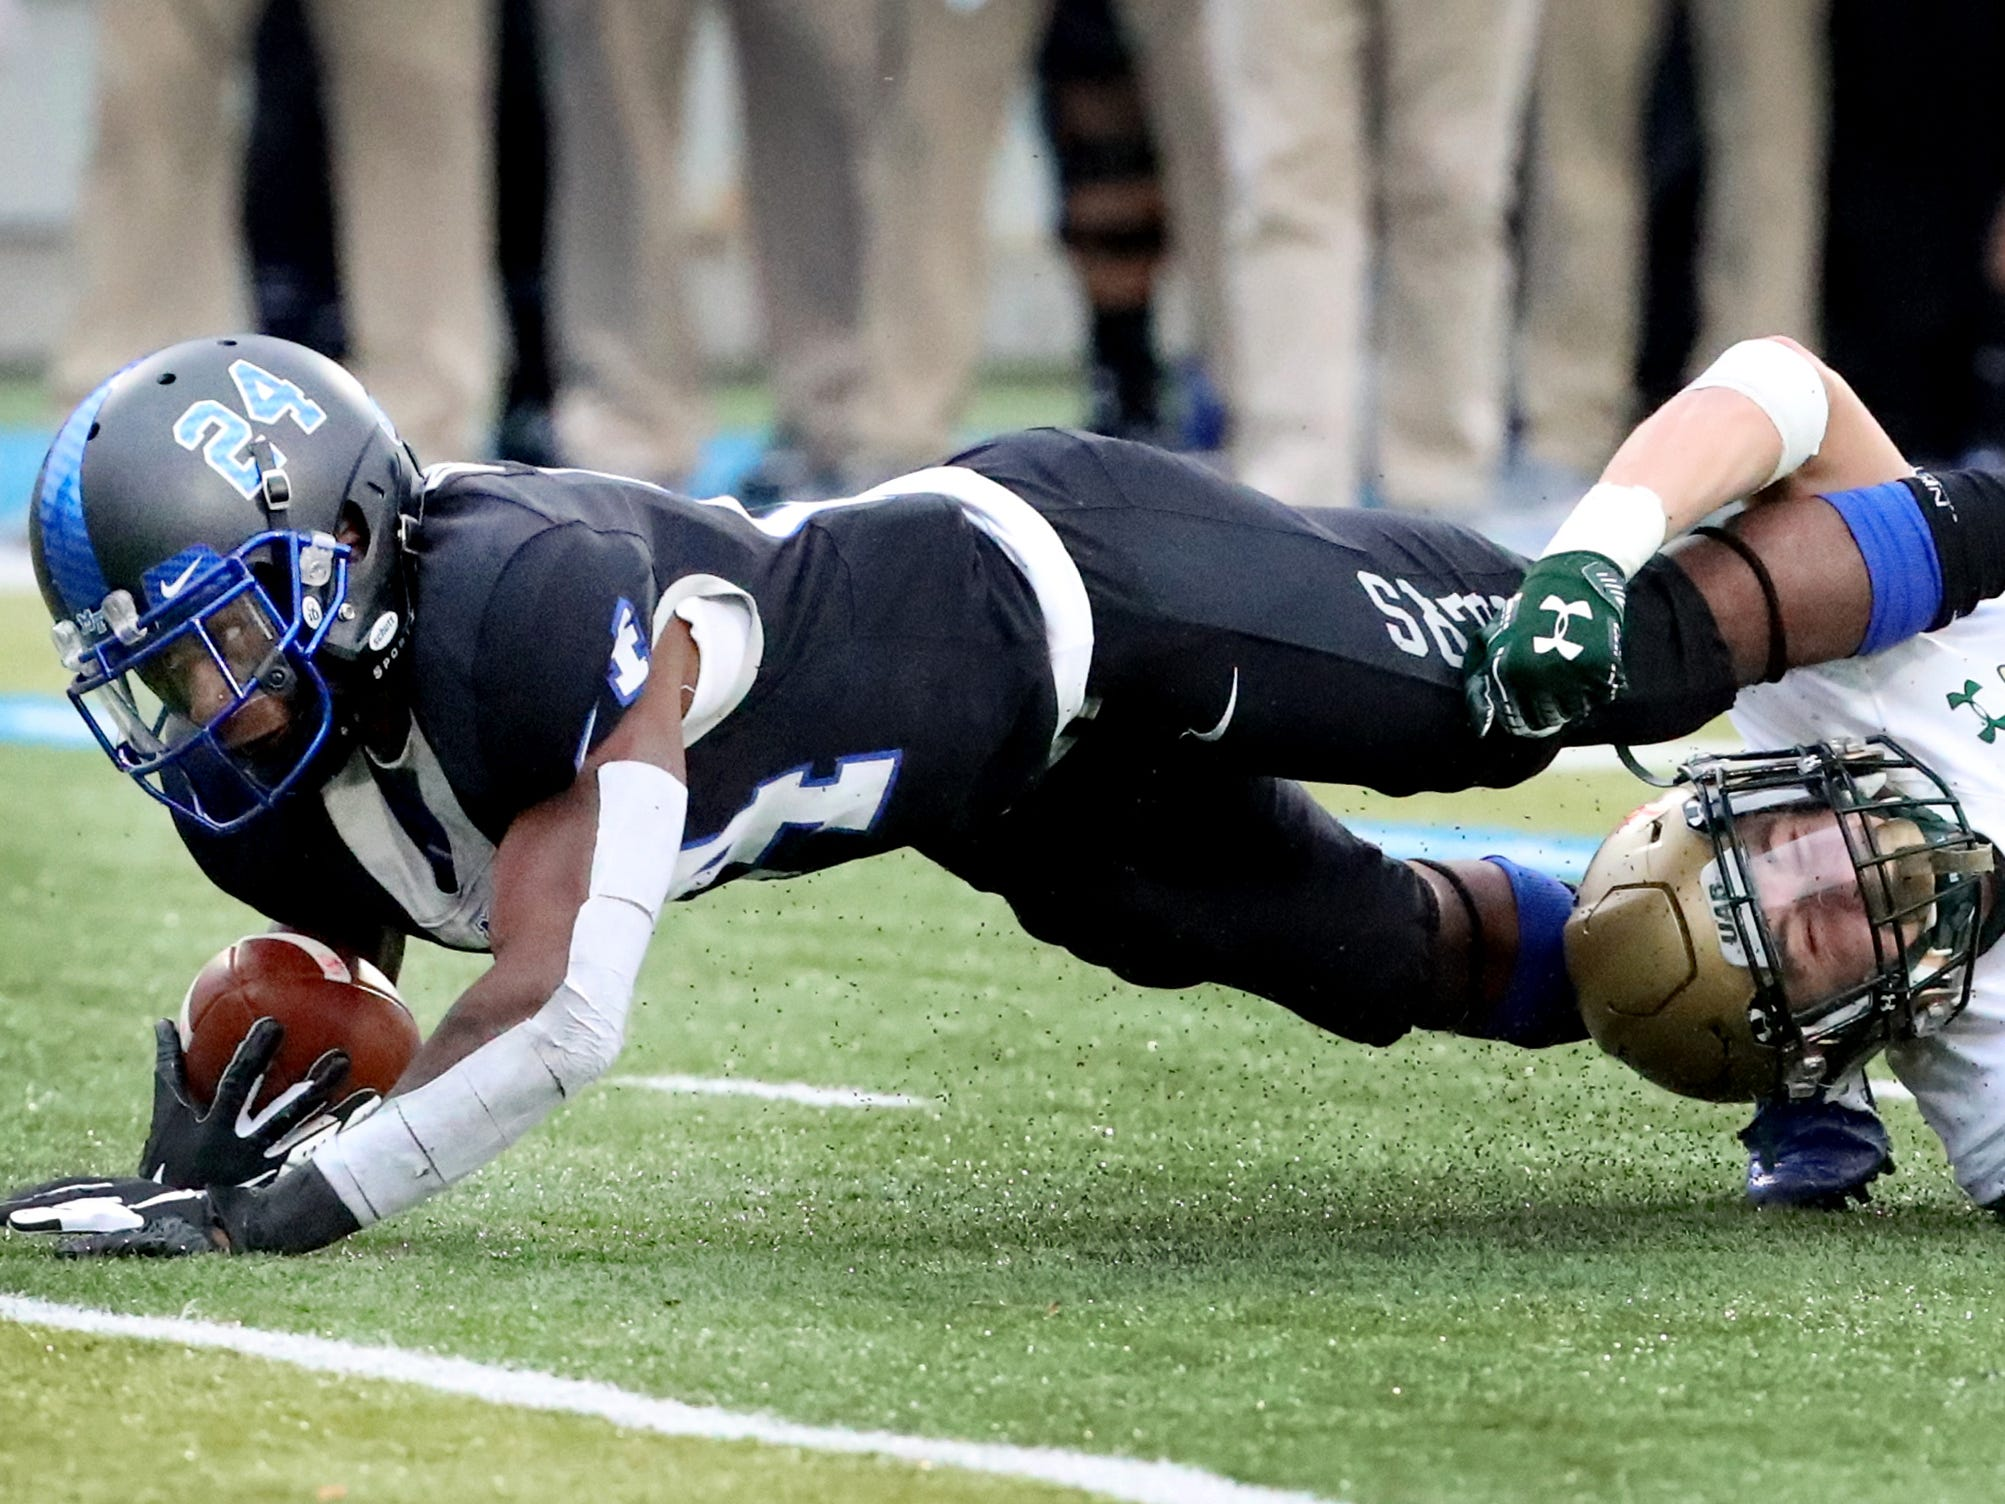 MTSU's wide receiver Zack Dobson (24) runs the ball as he is stopped by UAB's linebacker Kristopher Moll (20) during the Conference USA Championship at MTSU on Saturday, Dec. 1, 2018.